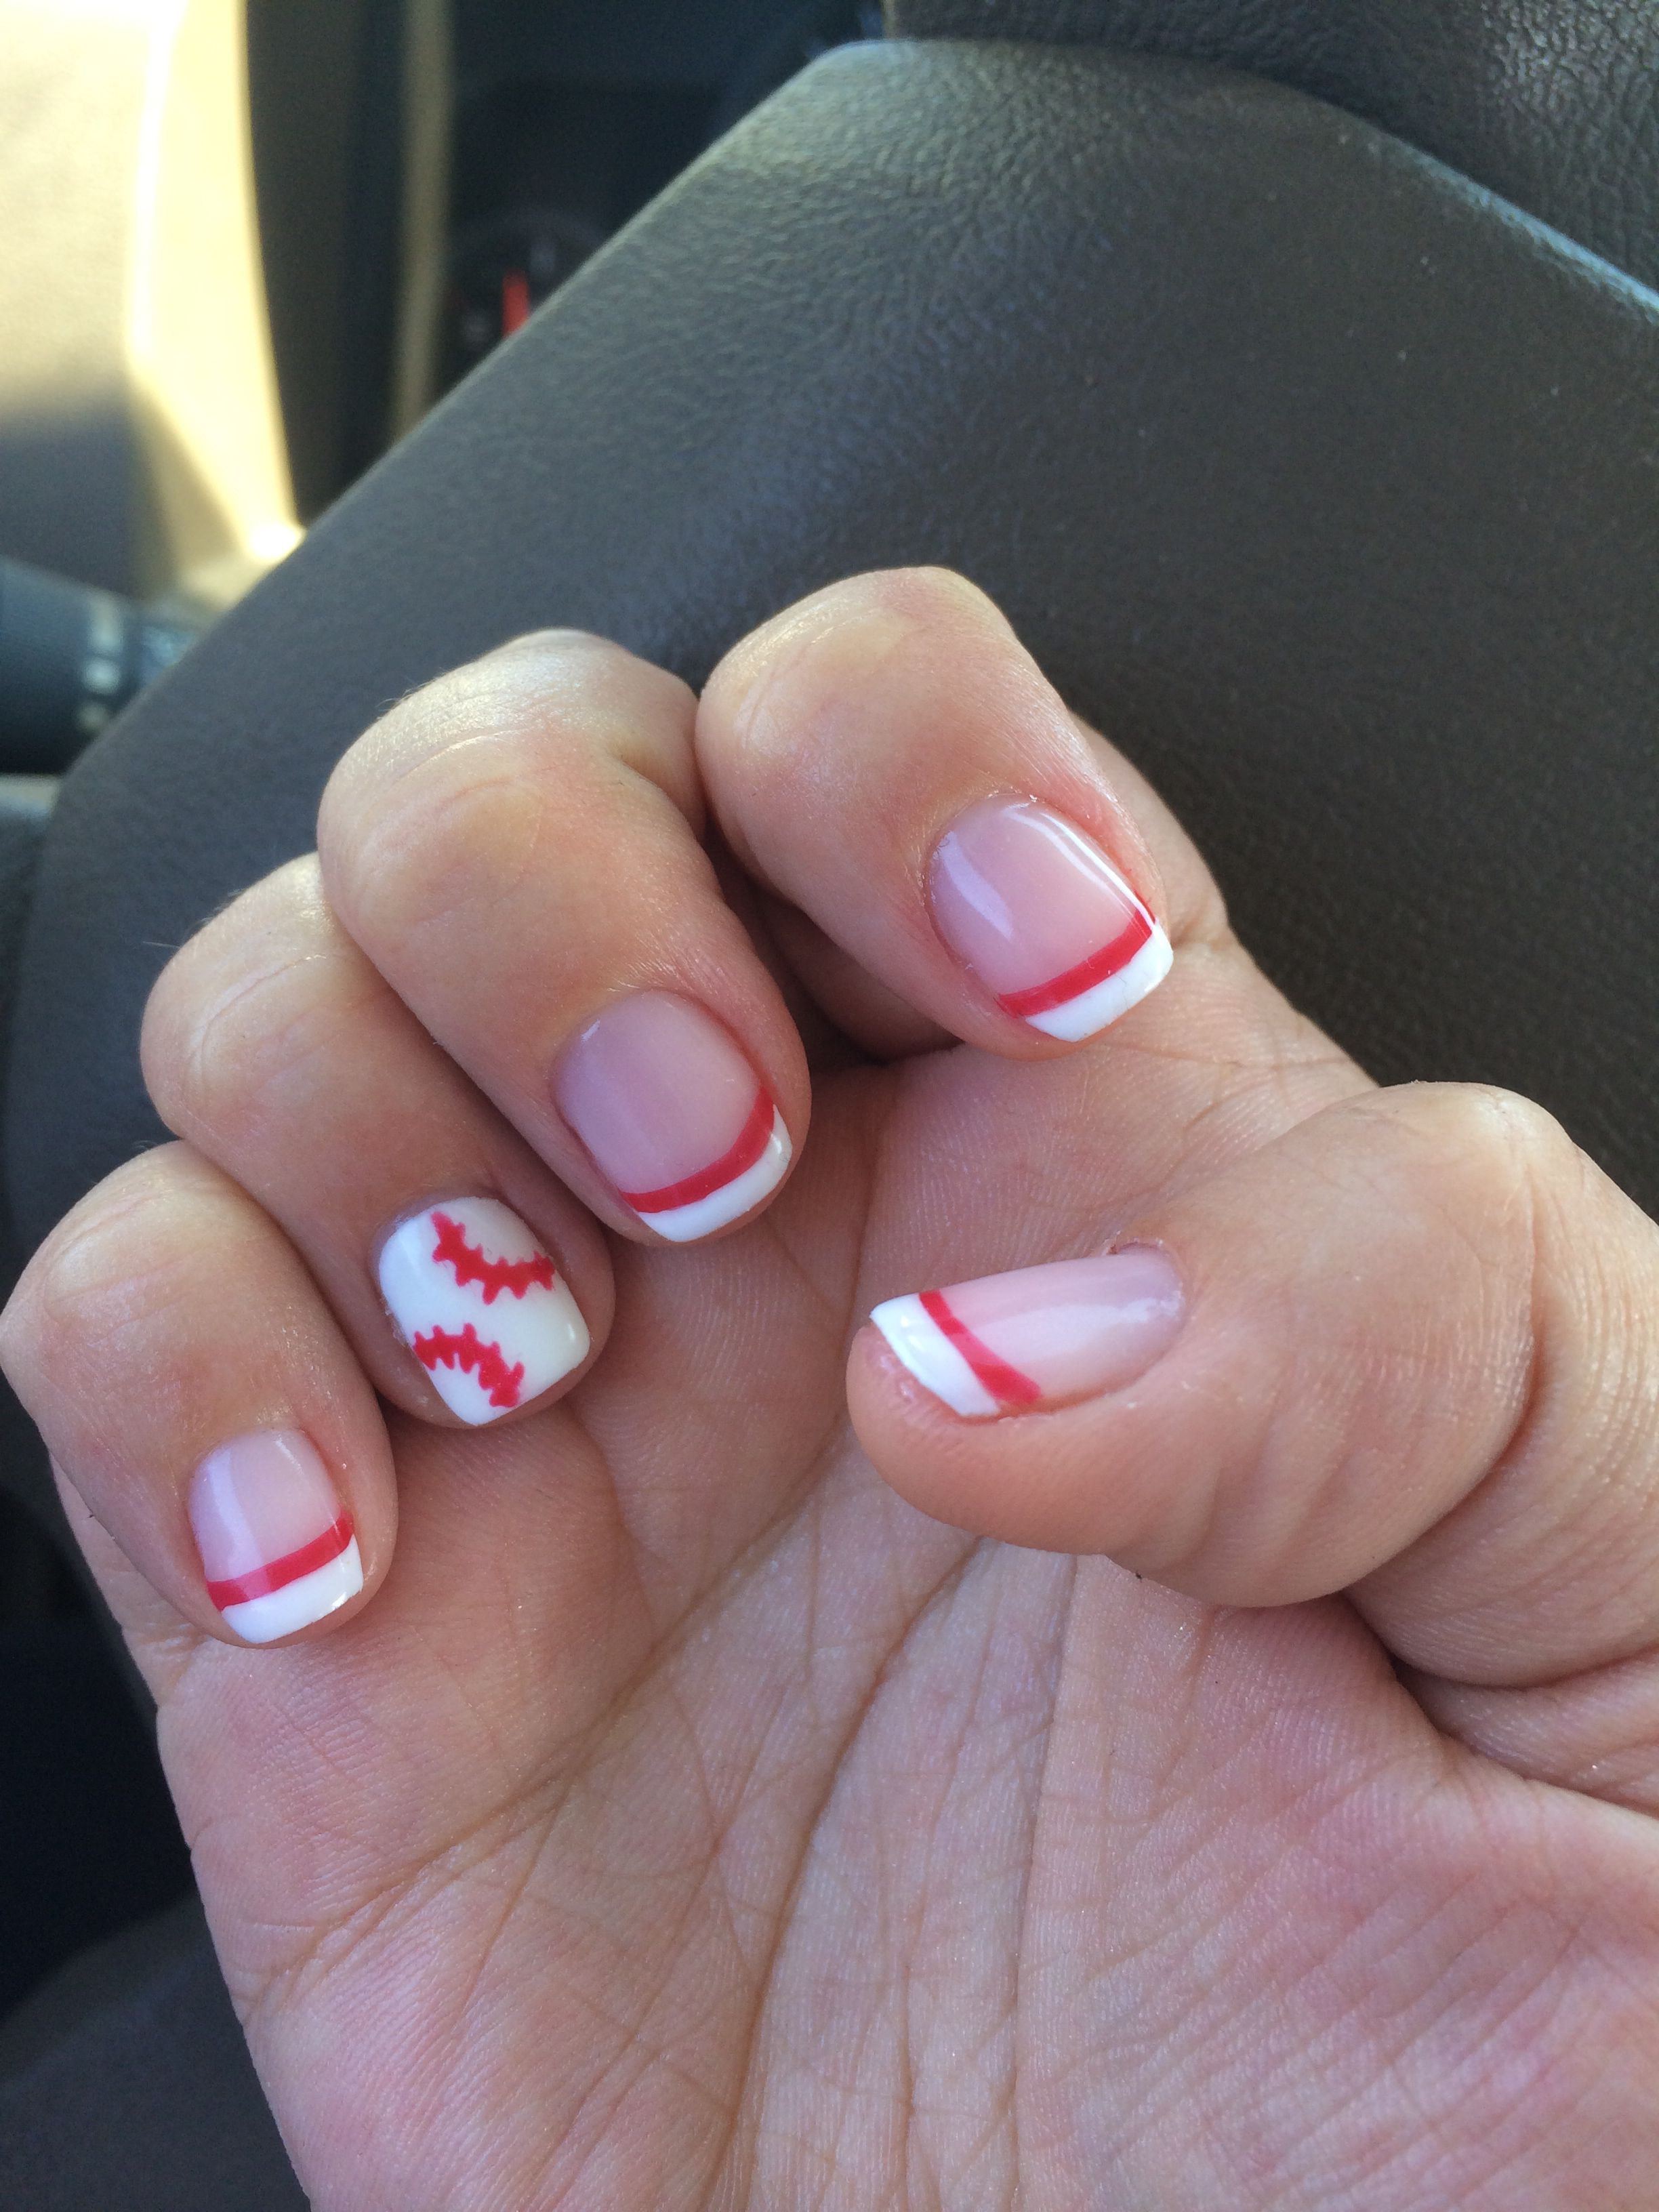 My own design of baseball nails. ❤ | My Own Style | Pinterest ...